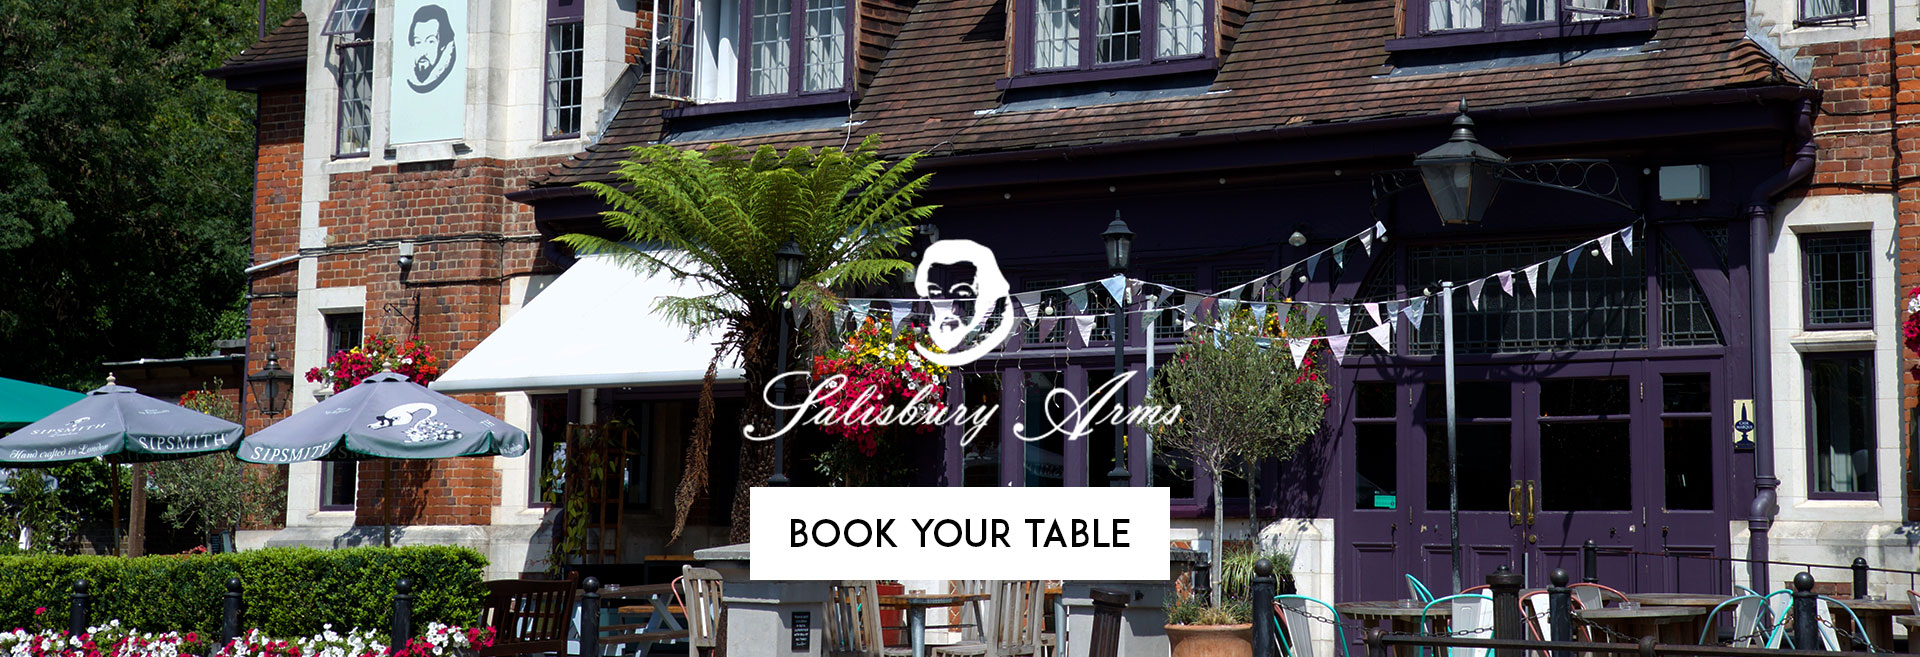 Book Your Table at The Salisbury Arms